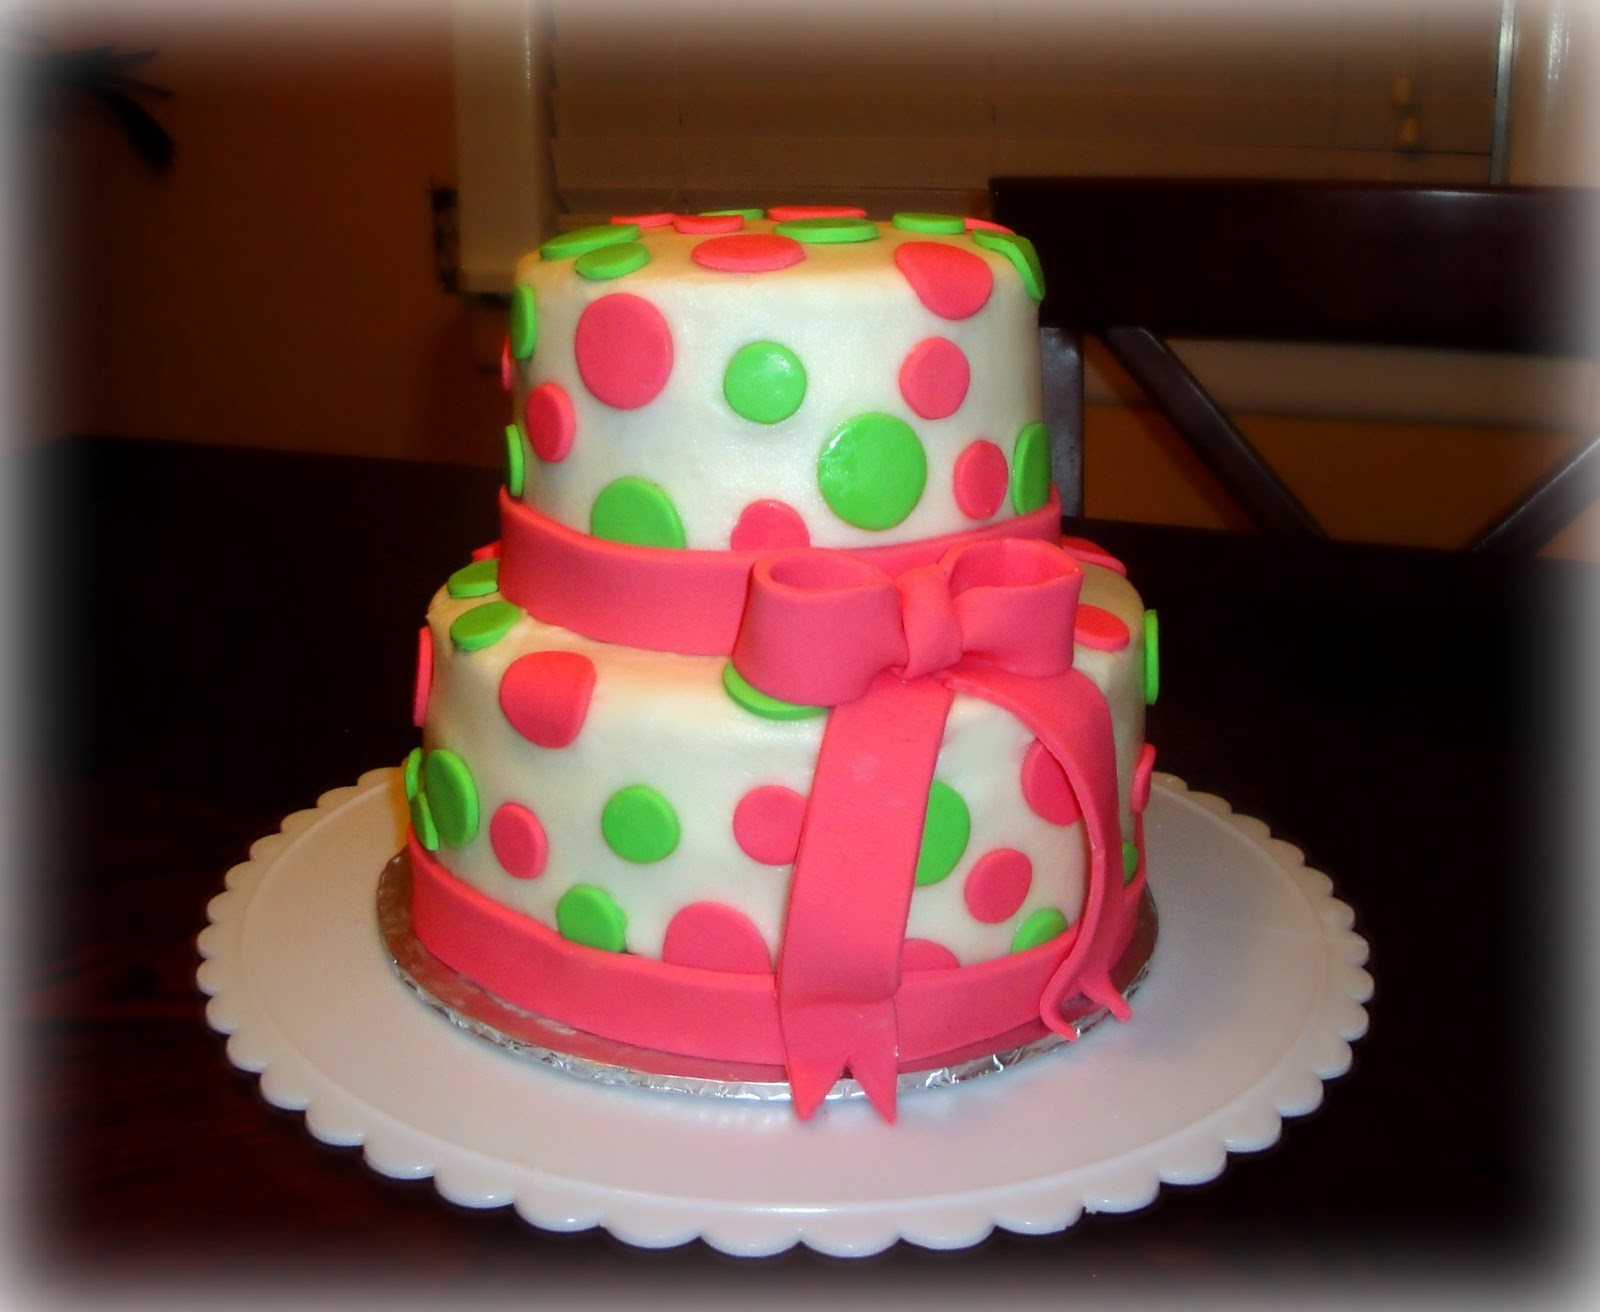 Simple Cake Designs For Girl Birthday : Confections: Girl s First Birthday